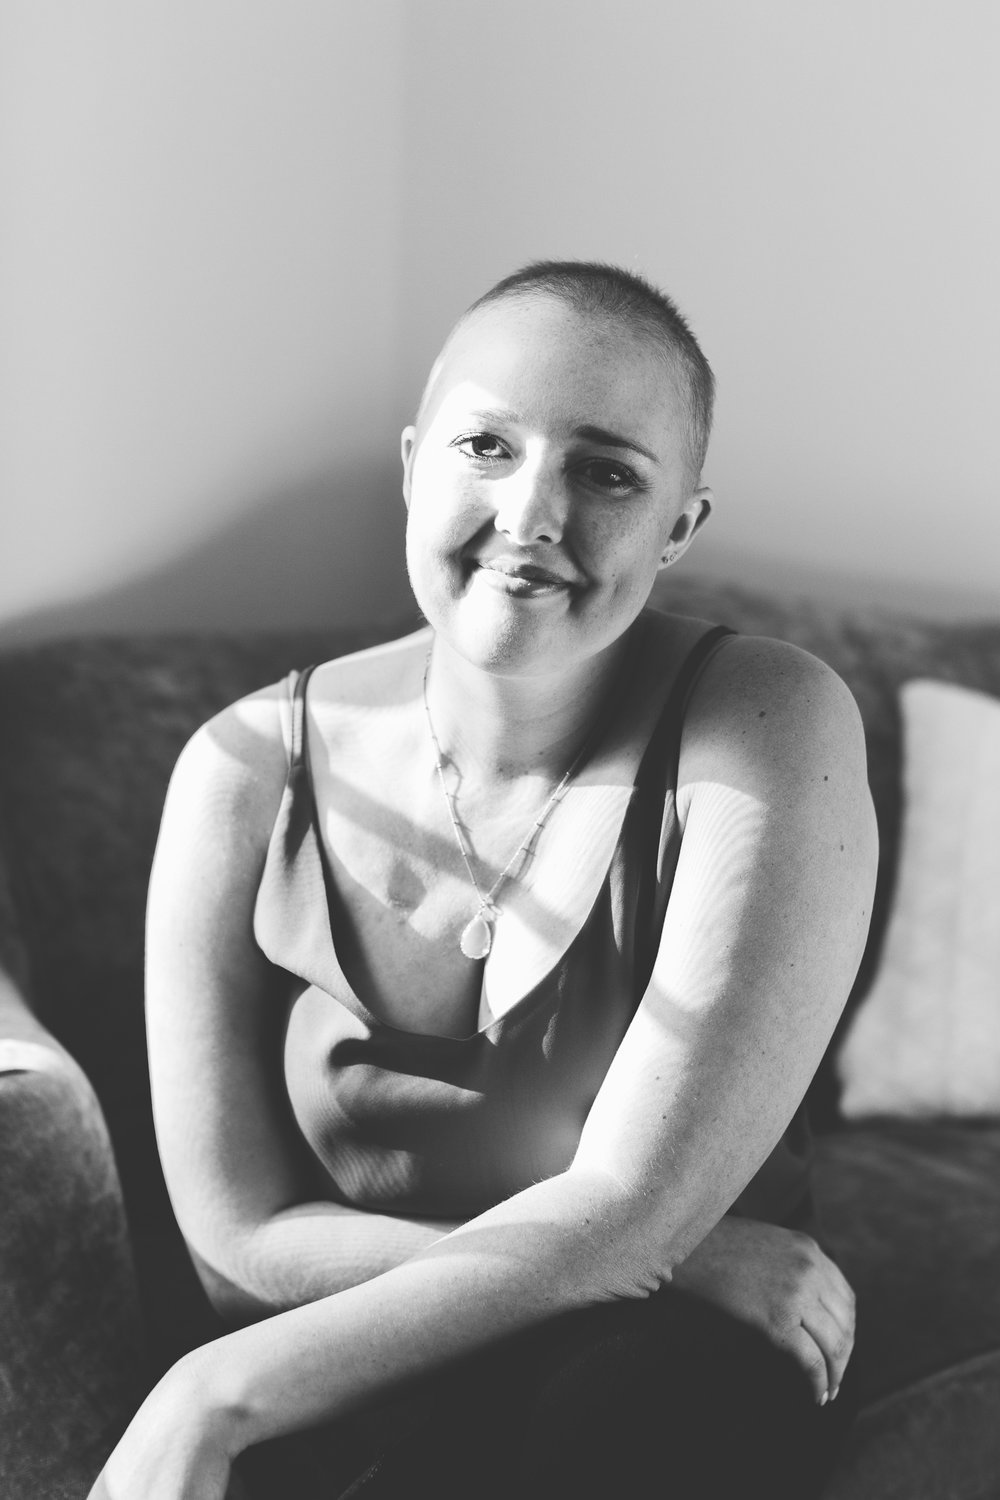 Cancer Patient Portrait // Self Love through Leukemia black and white, poses, portraits, indoor, ideas, personal, cancer fighter, leukemia, inspiration, lifestyle, outfit, fun, simple, creative, artsy, unique, natural light, light and airy, vibrant, colorful, head shots, professional, Knoxville, Tennessee